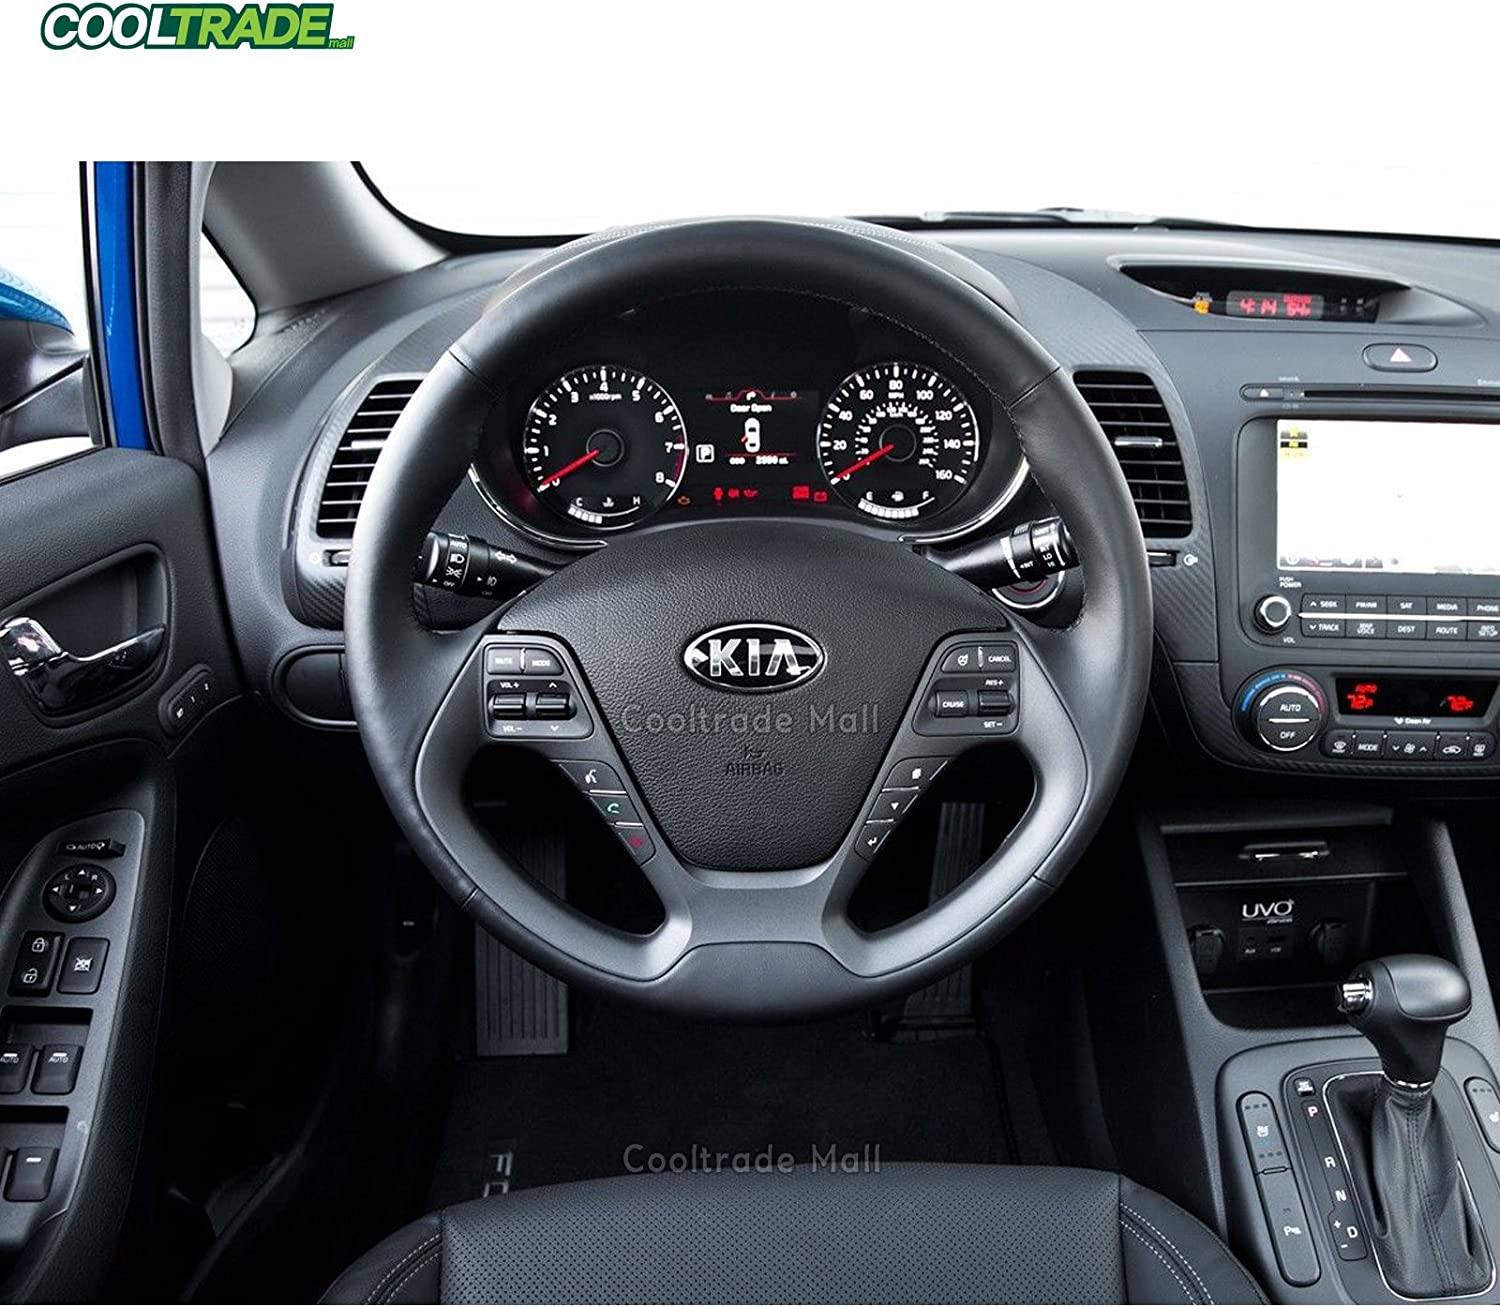 2015 Kia Forte5 Headlight Switch Wiring from images-na.ssl-images-amazon.com